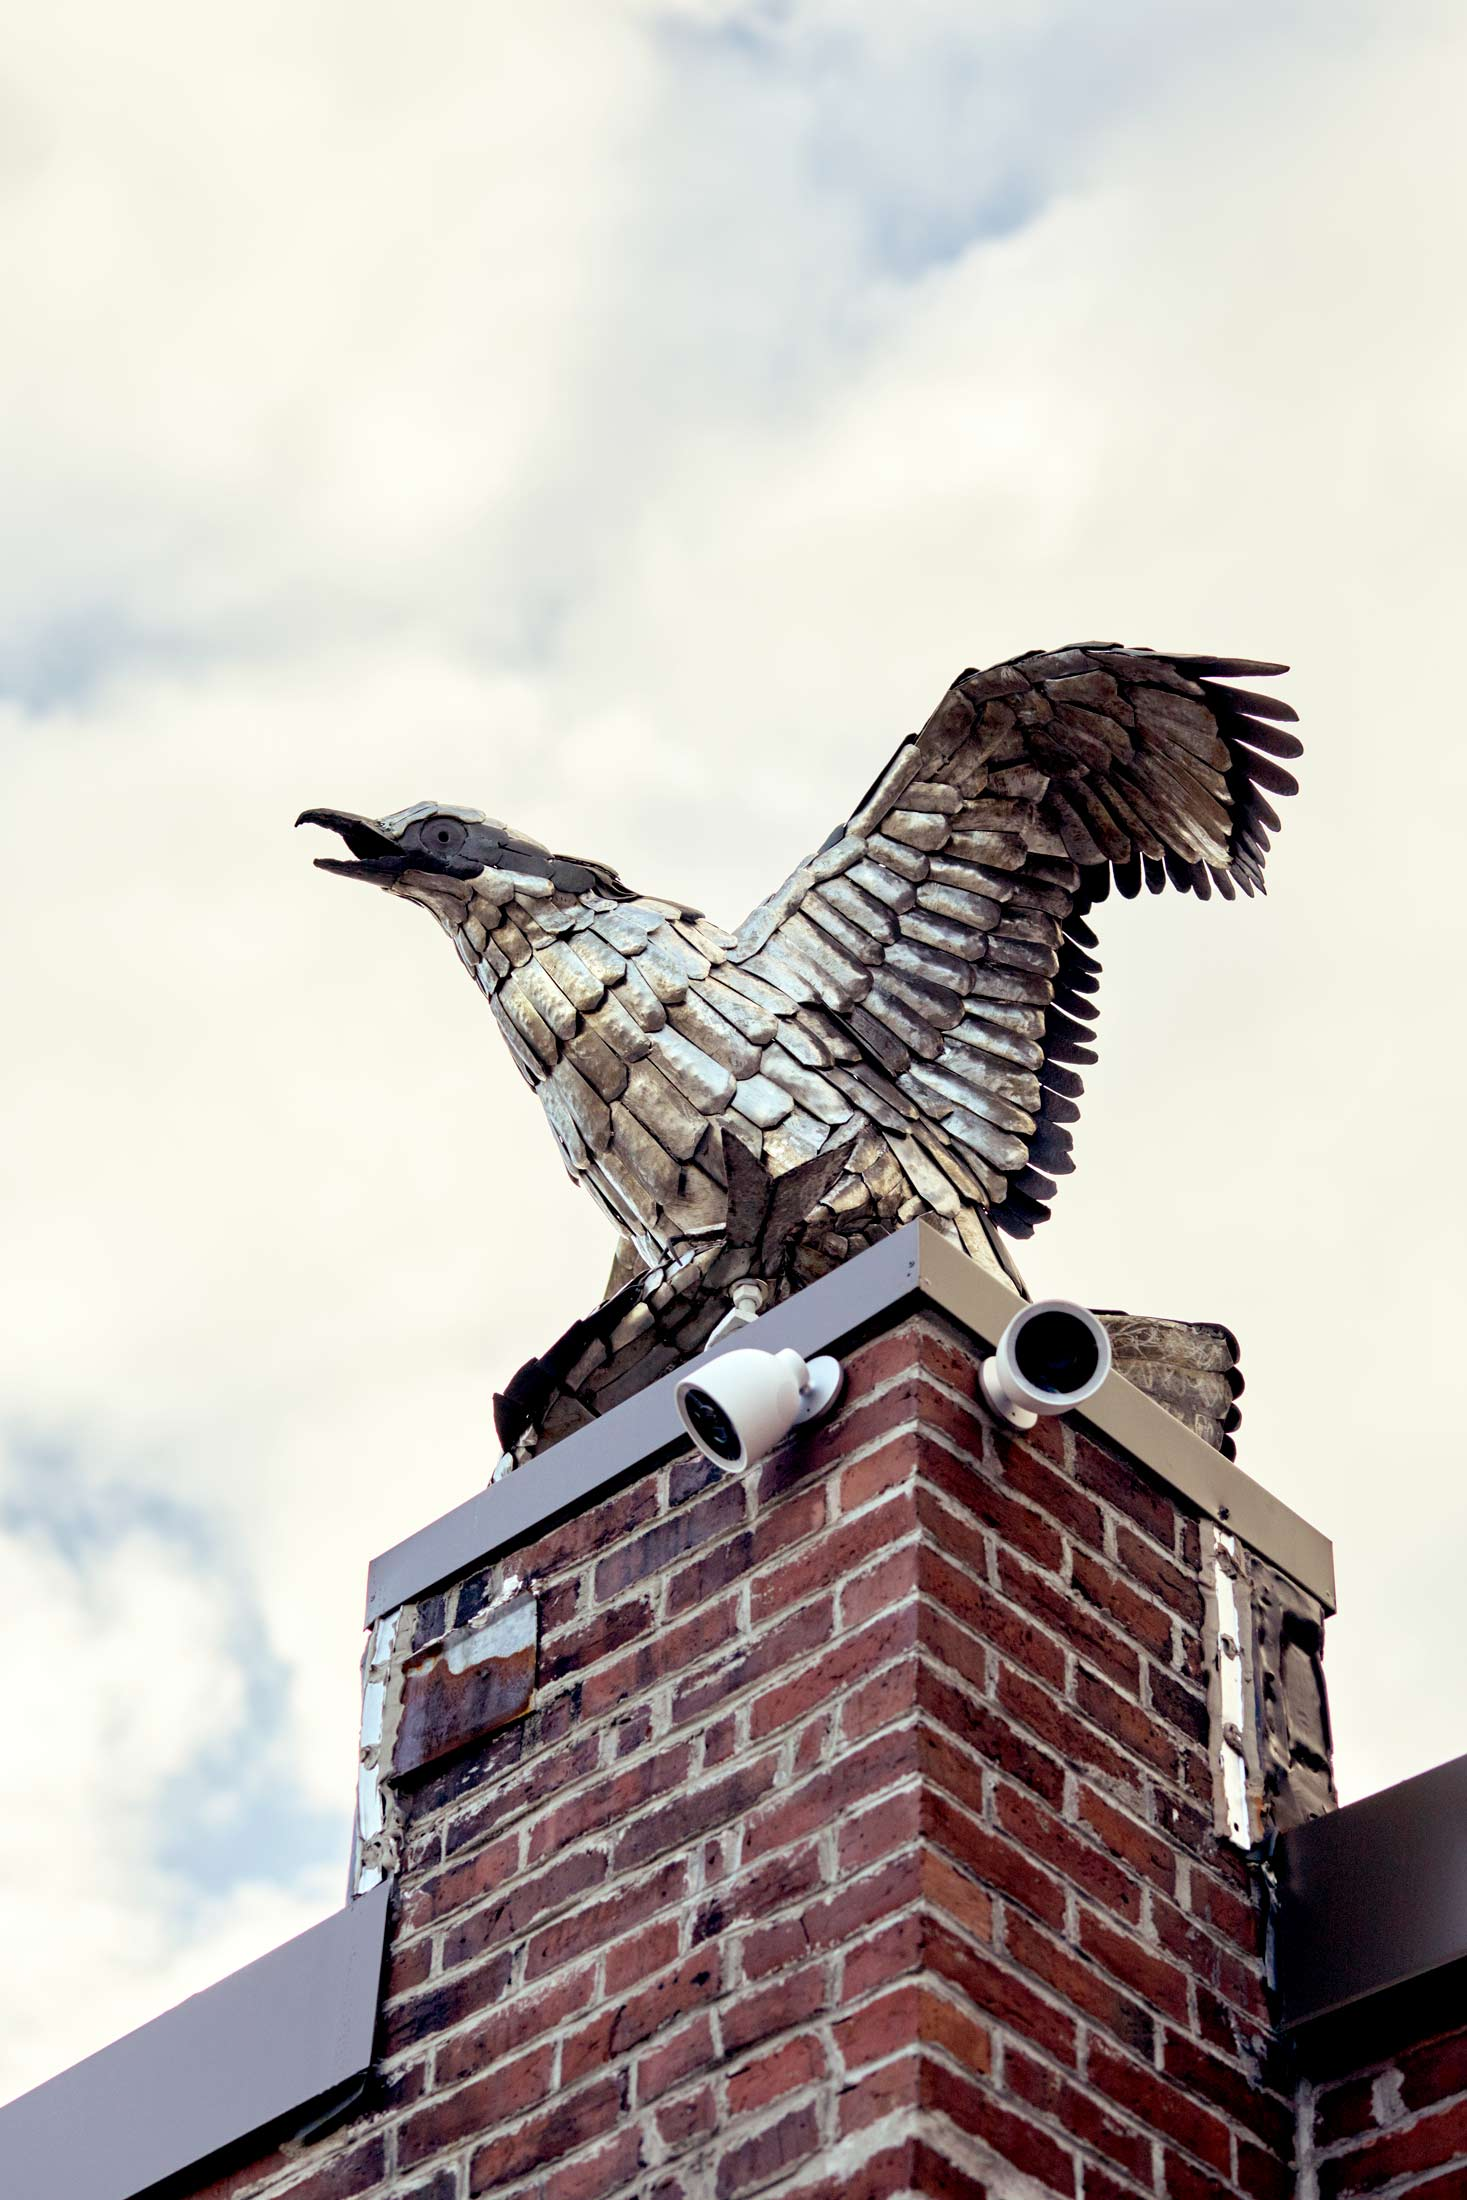 An osprey eating a fish perches on a non-functional chimney. Lauren's father did the sculpture.